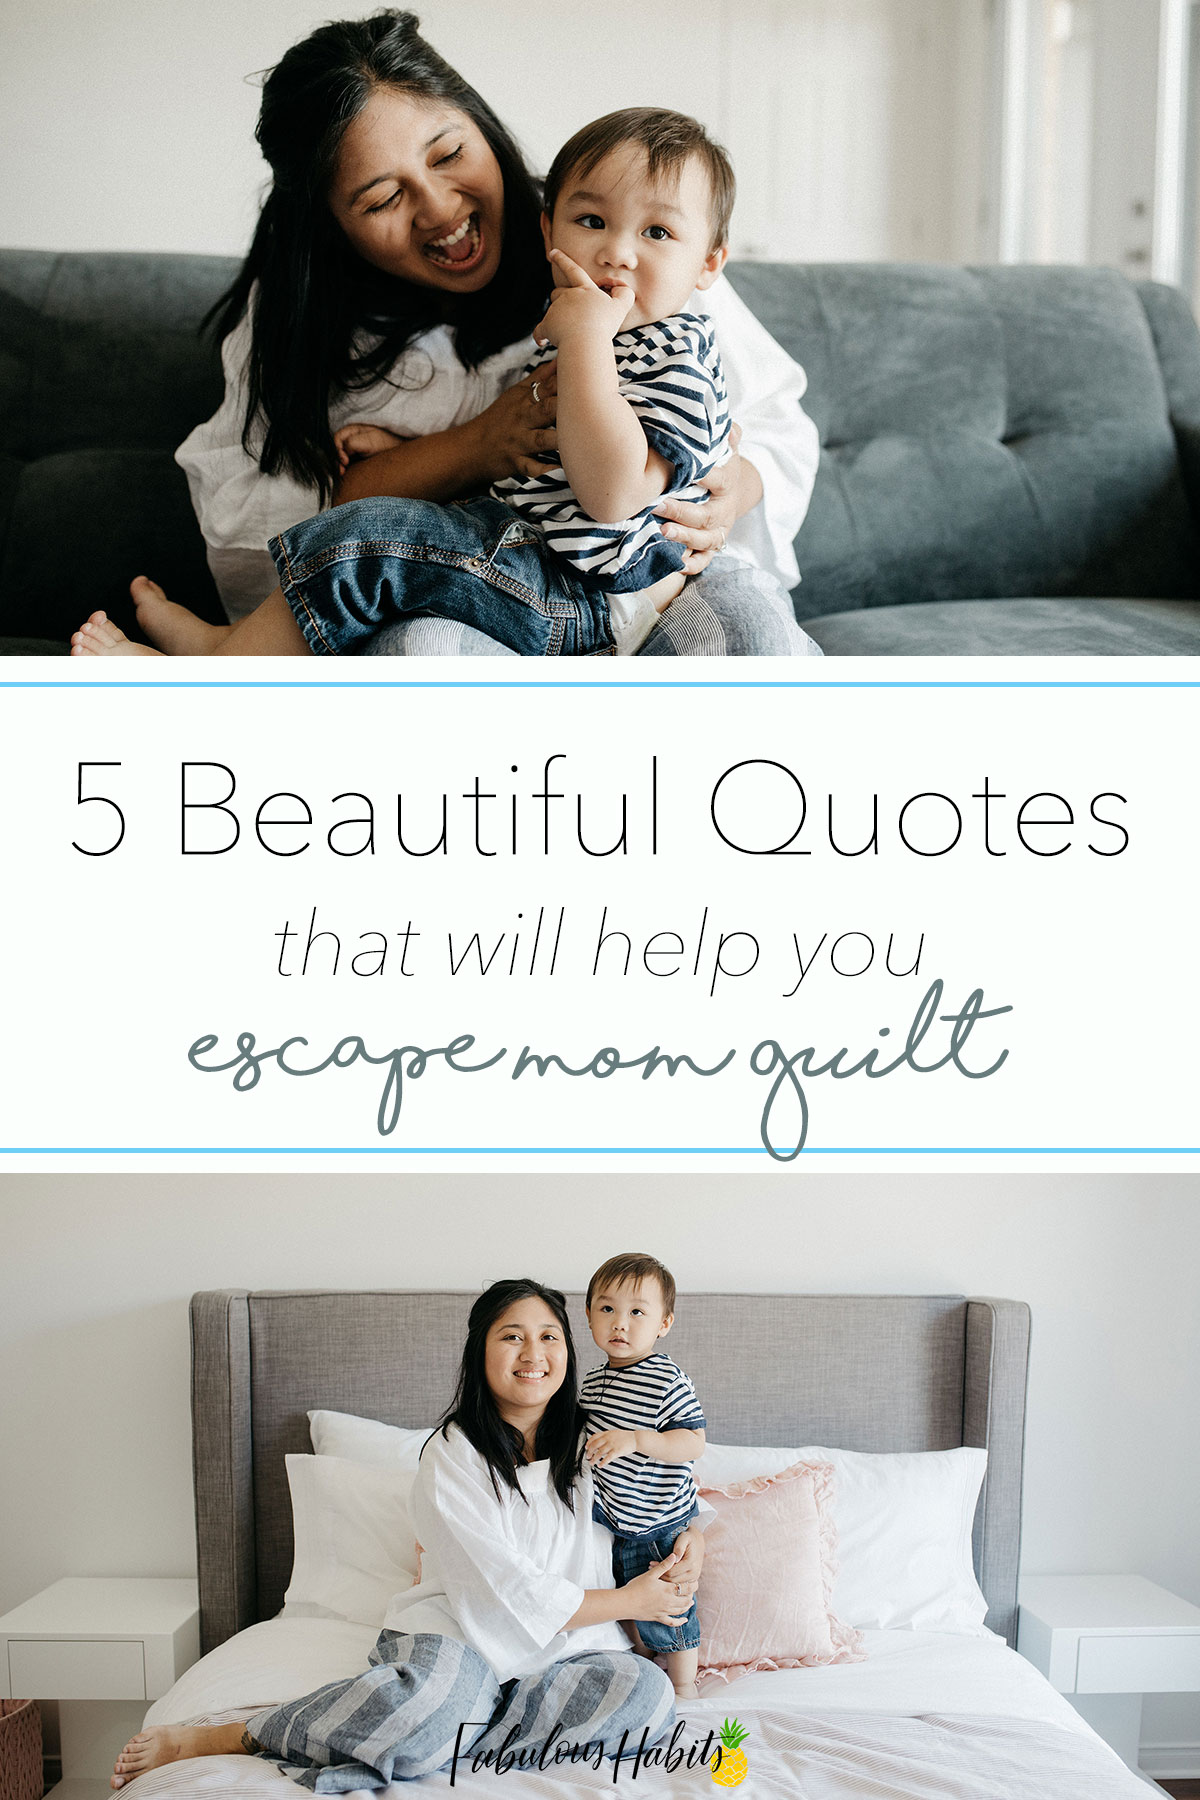 The feeling of mom guilt is draining. Here are some inspirational quotes to keep you lifted and worthy! #supportingmoms